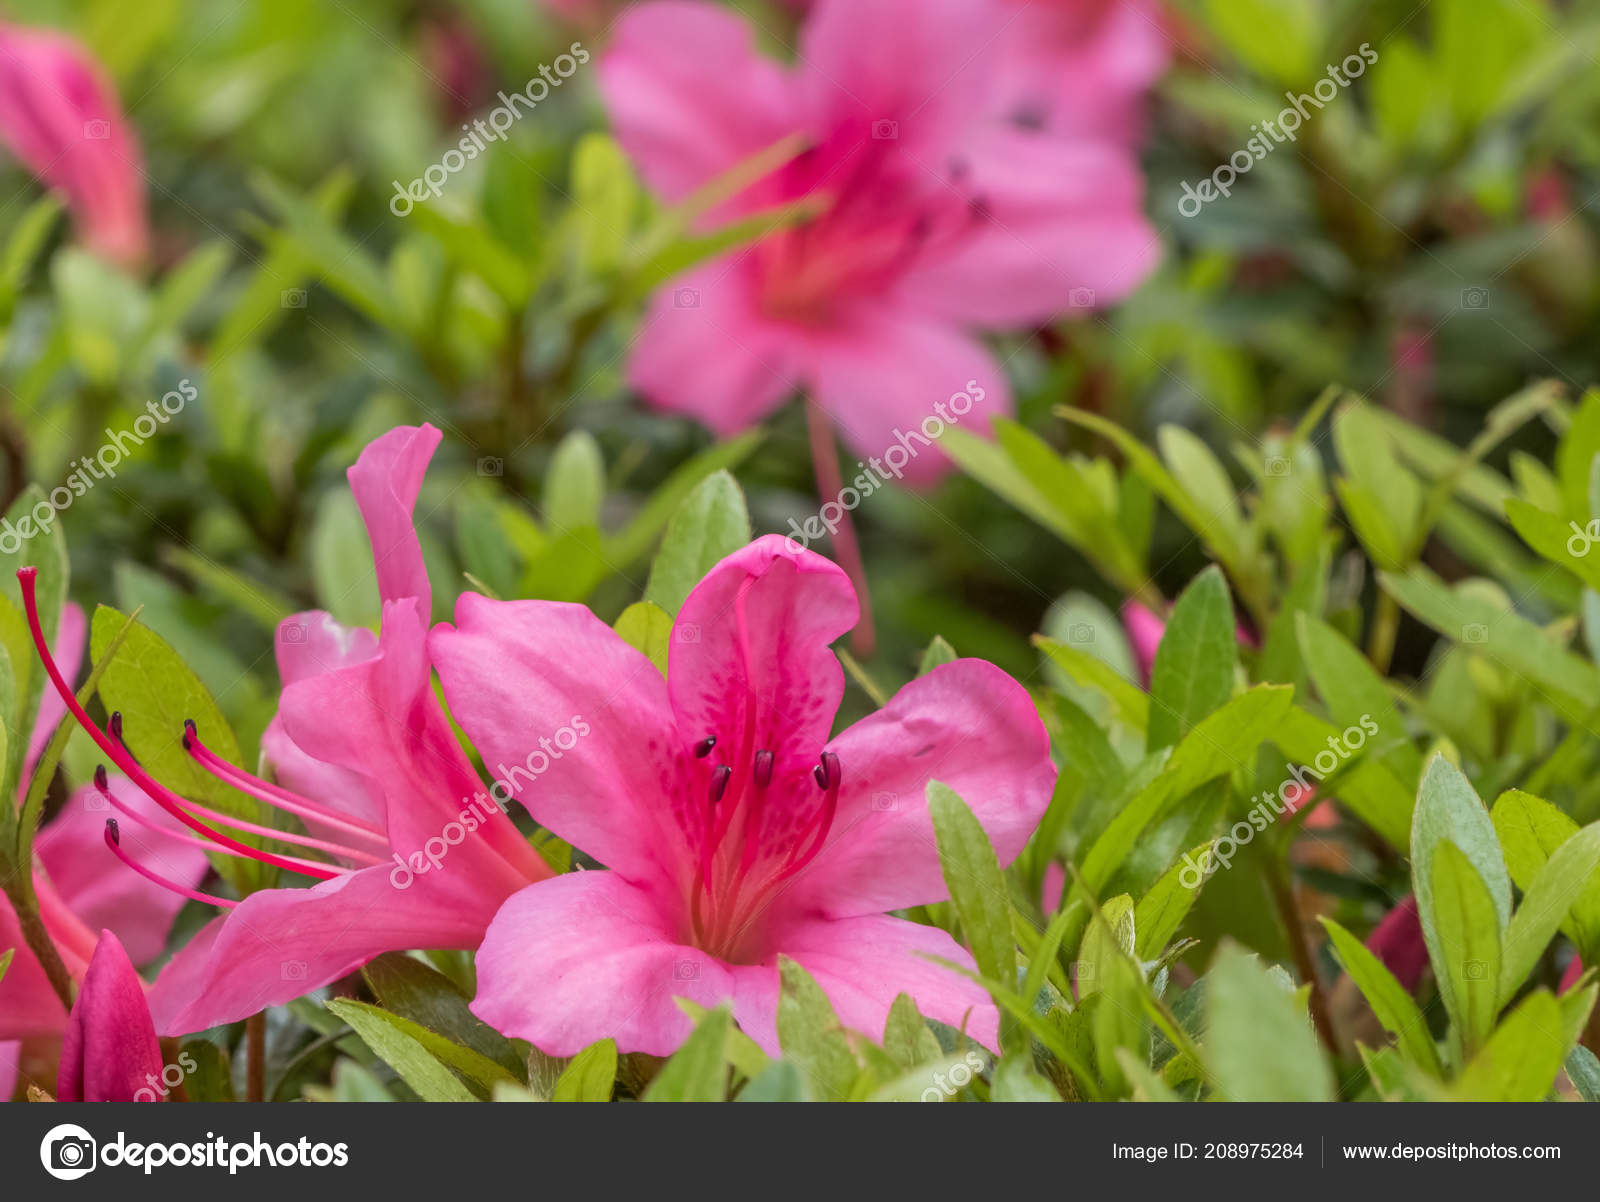 Beautiful Pink Flowers Growing Garden Stock Photo Akulamatiau